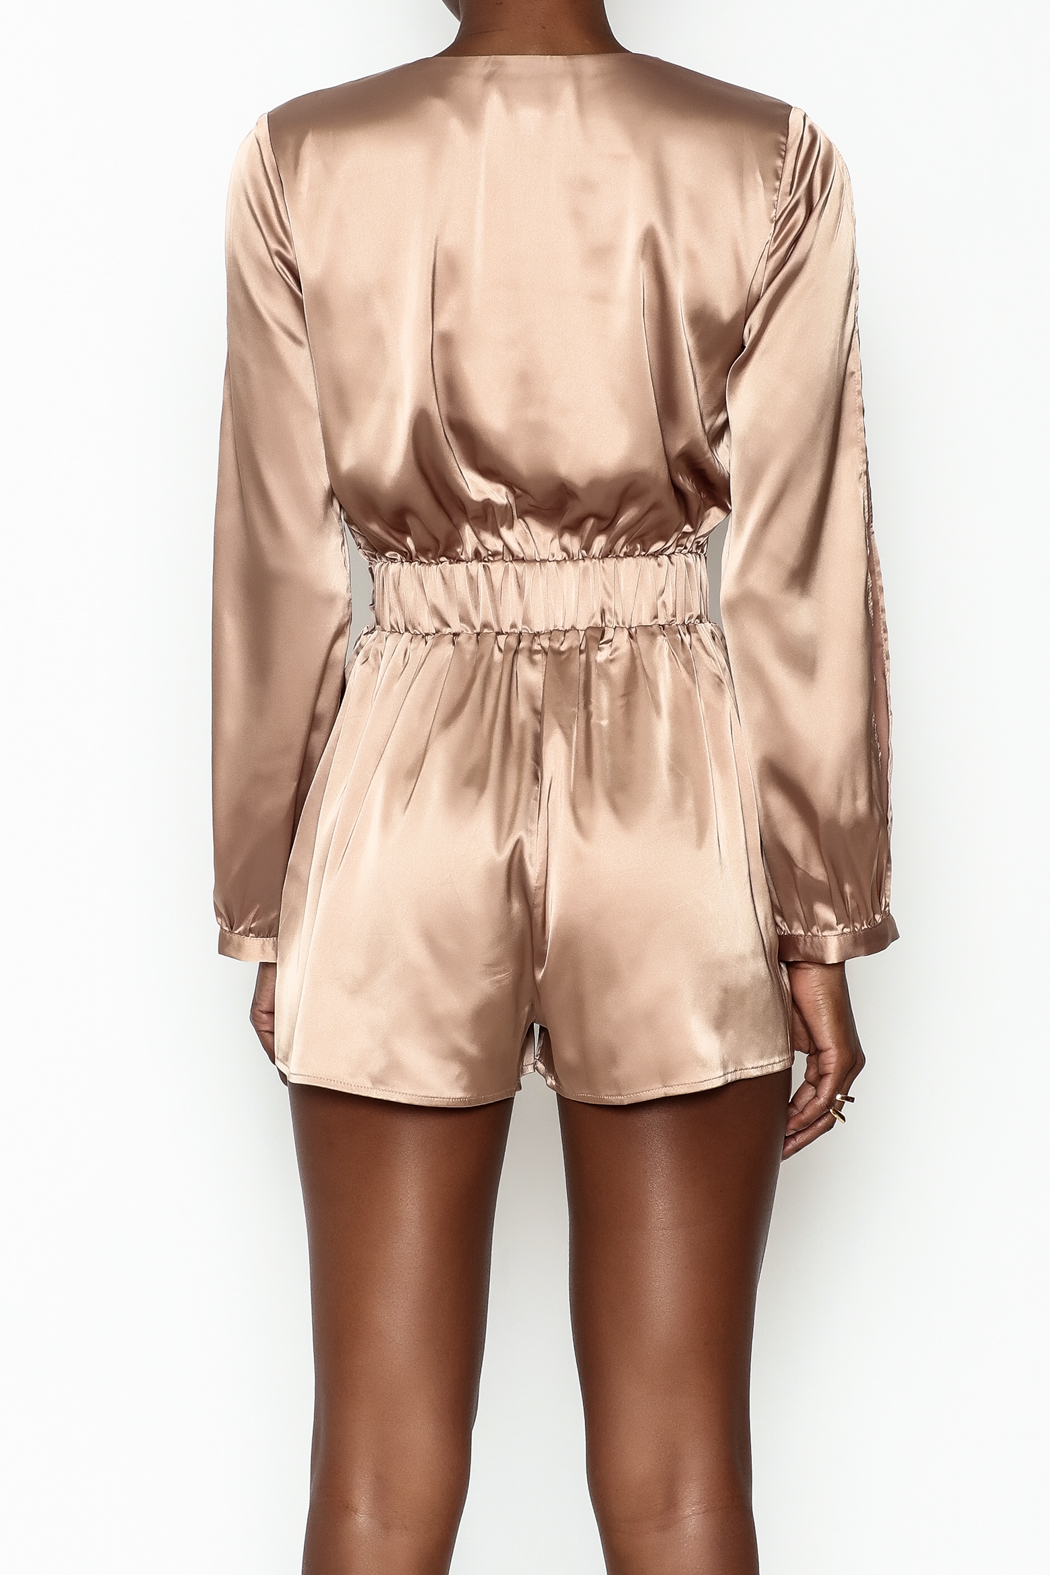 miss avenue  Gold Satin Romper - Back Cropped Image